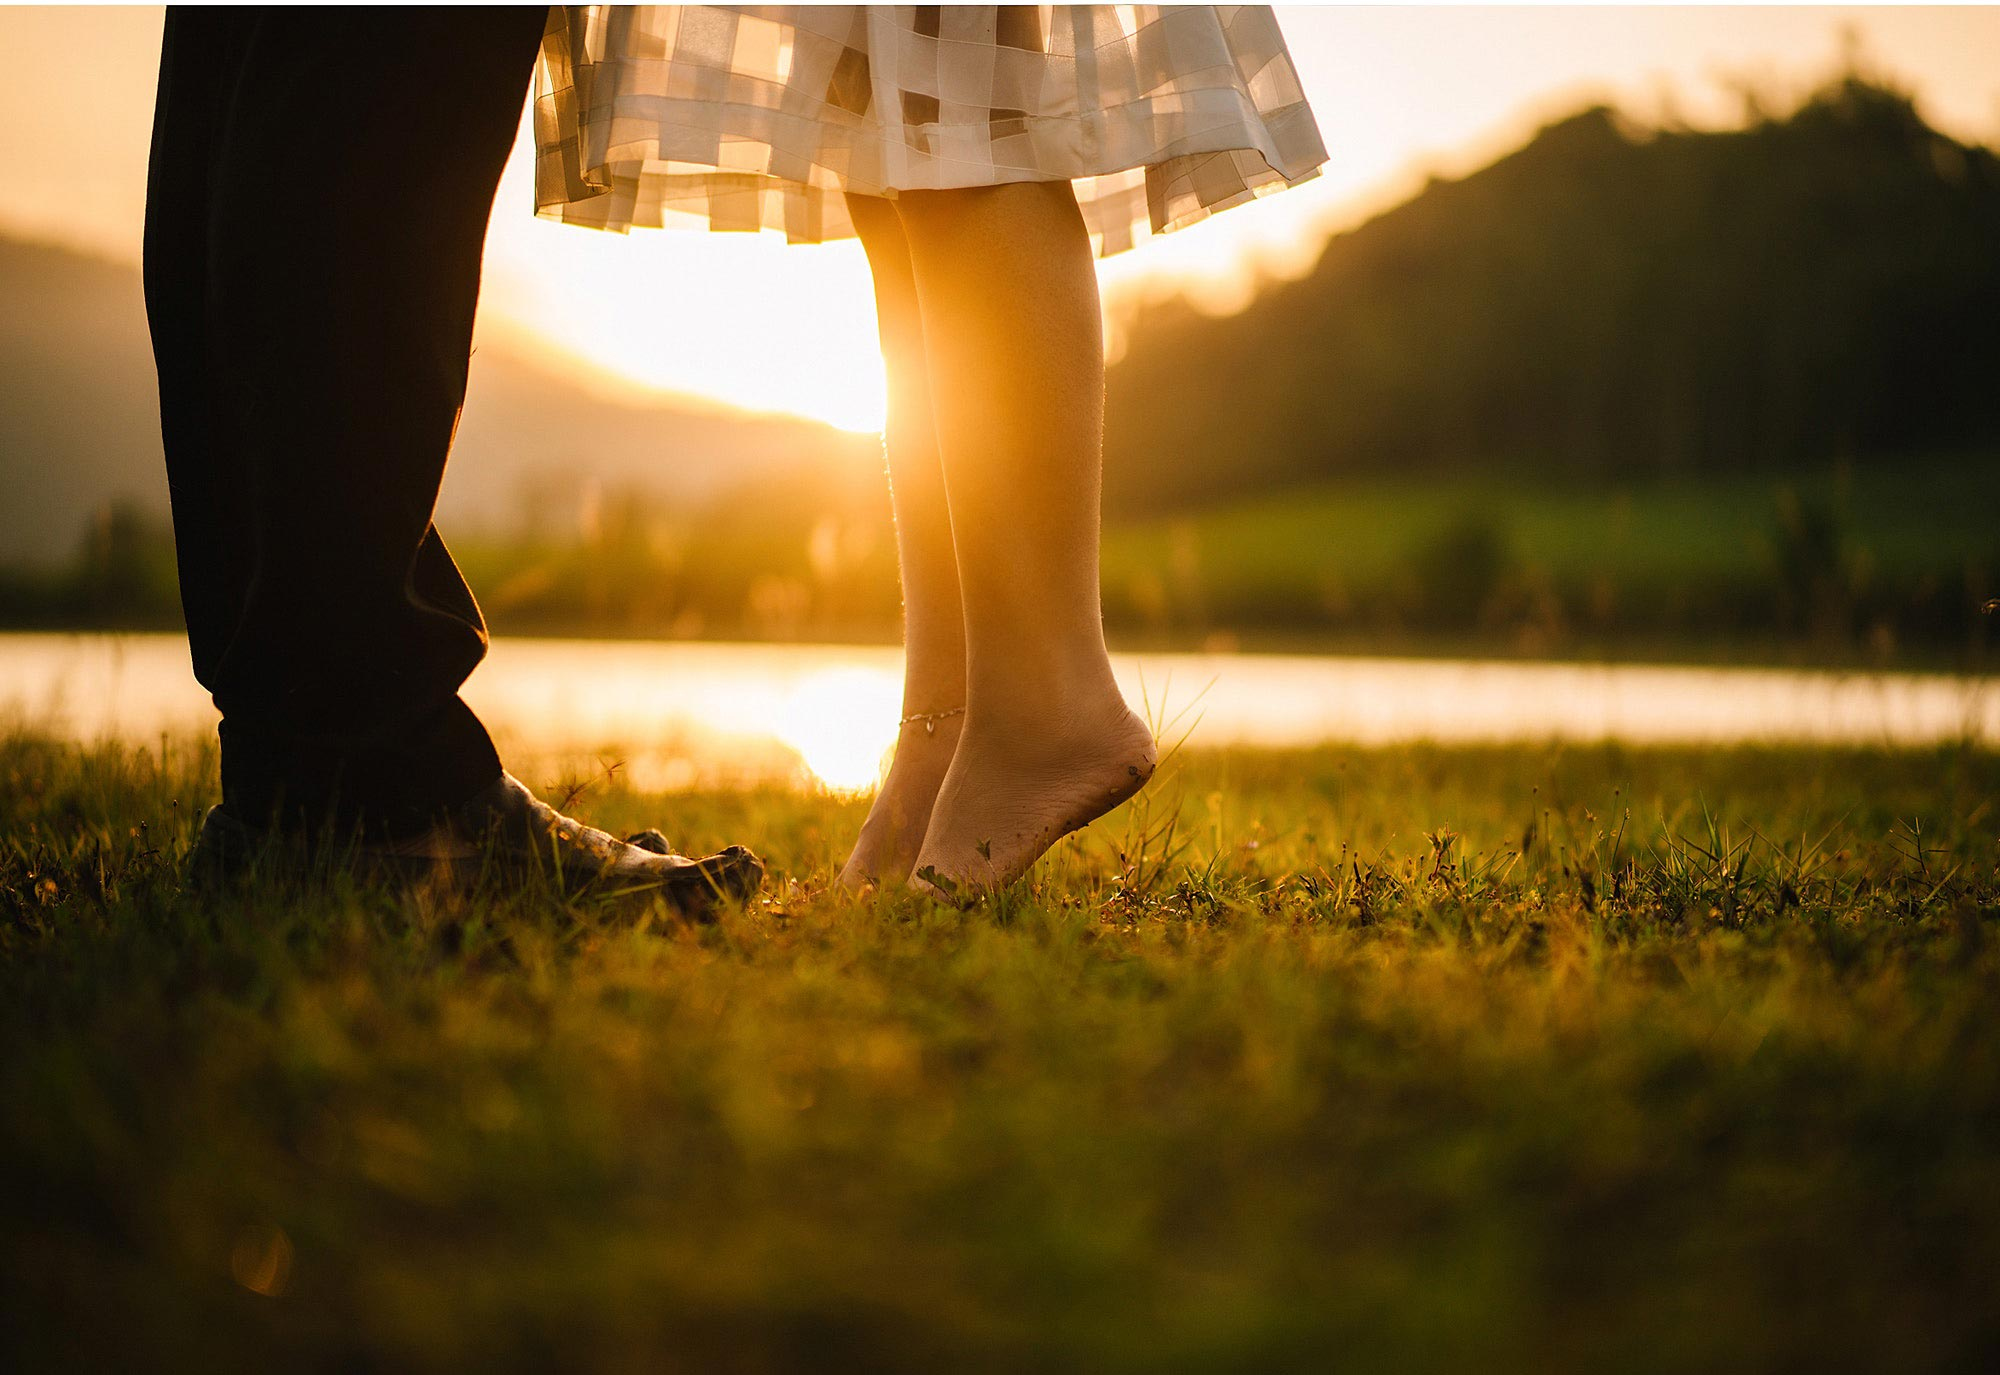 Couple's legs with sun shining. Couples counseling in Worthington & Columbus, OH area available at Blue Boat Counseling.43085